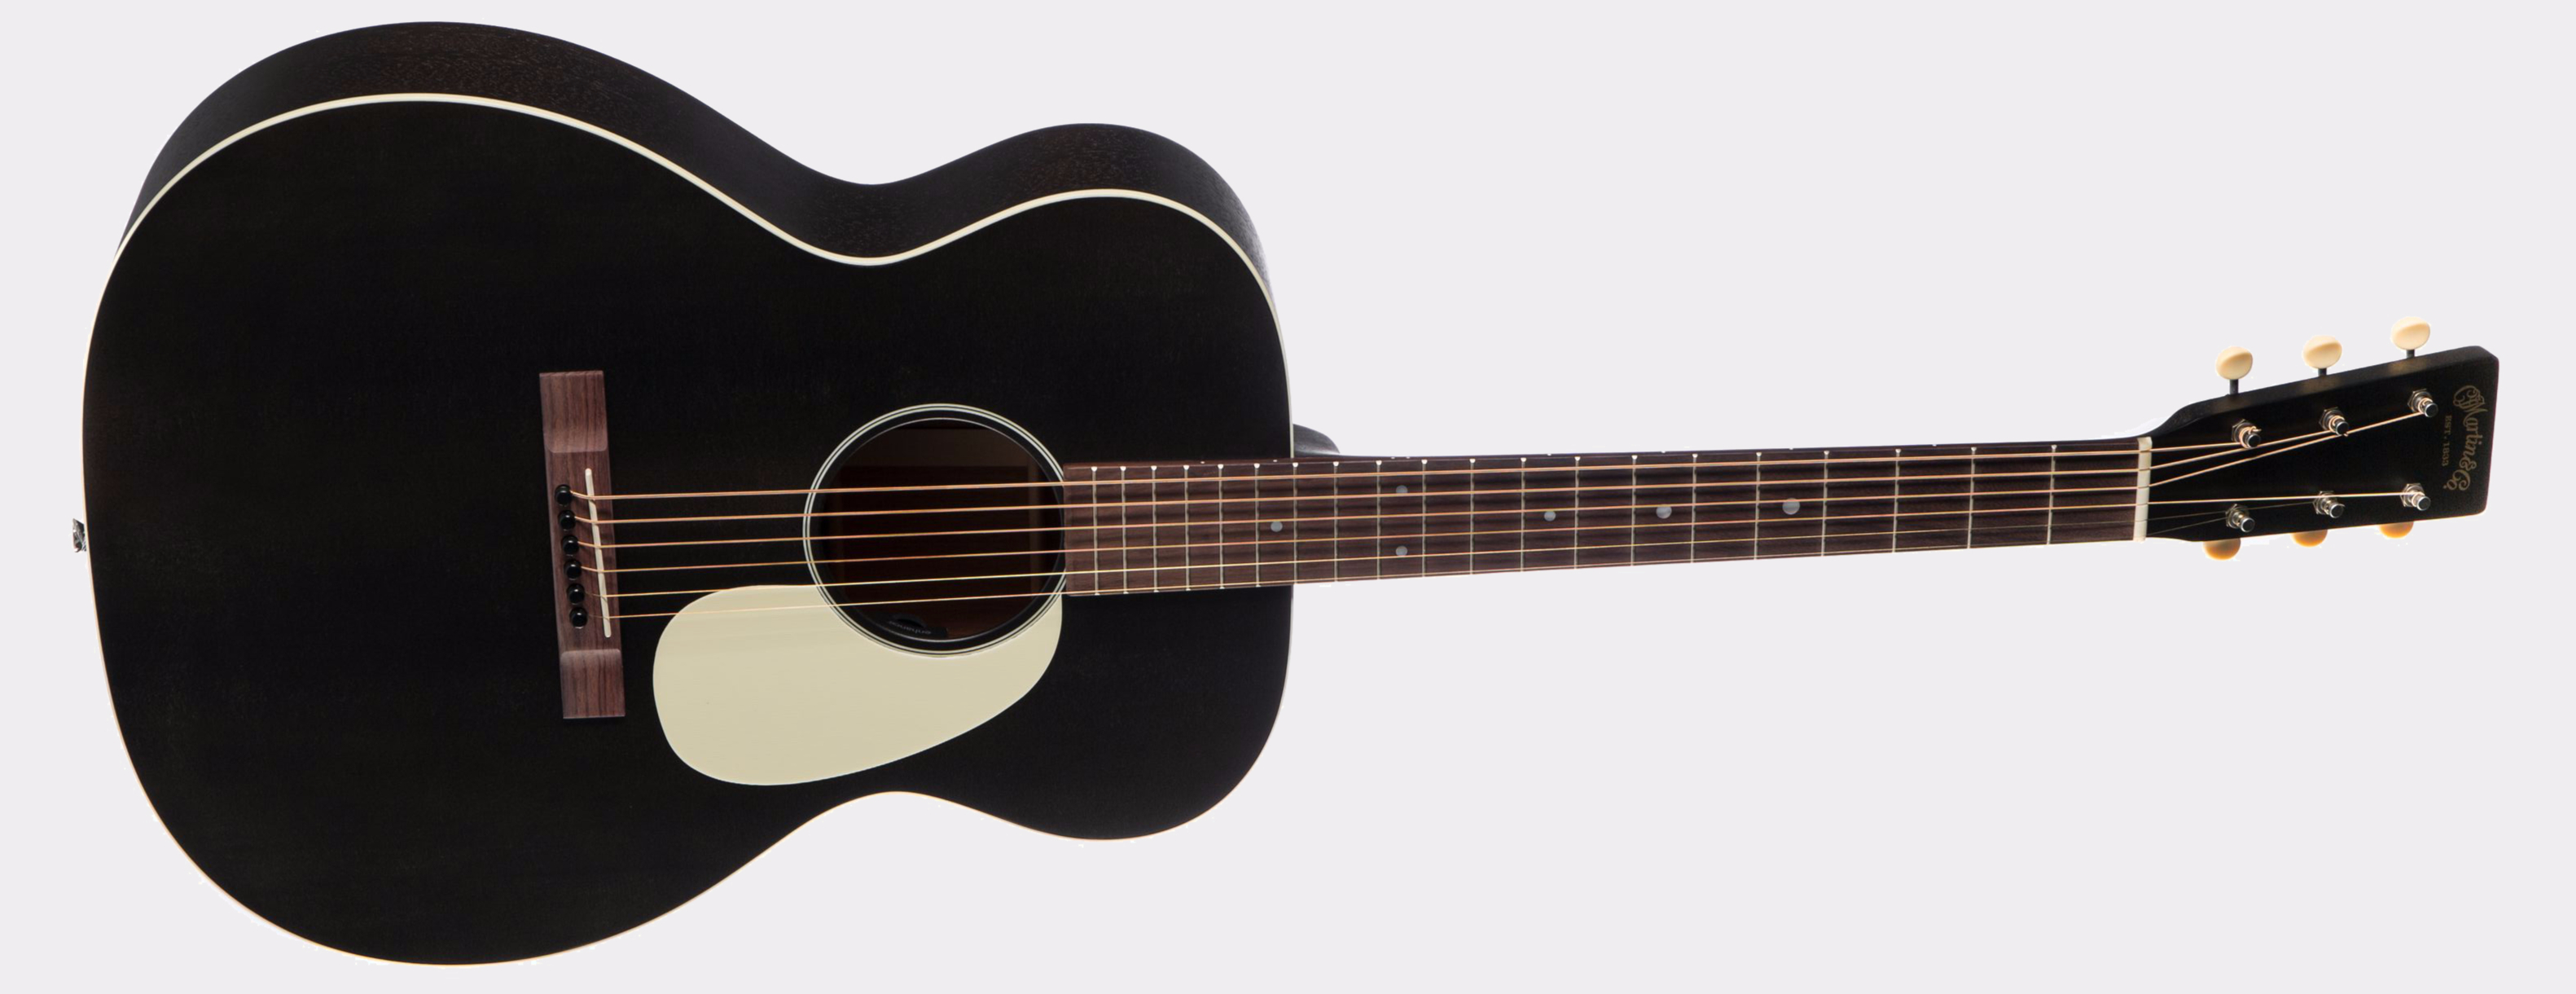 Martin Guitars 000-17E Black Smoke